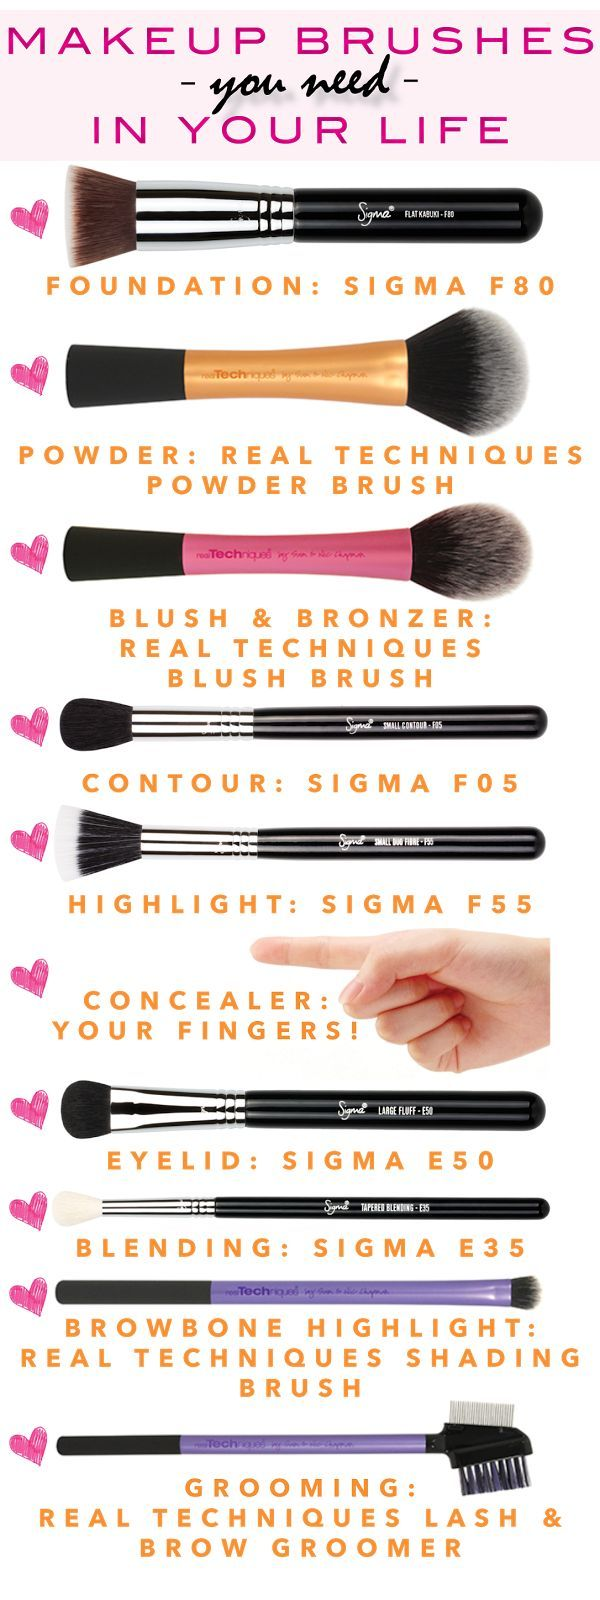 Apply Makeup Like a Pro: Makeup Brushes You Need in Your Life | thebeautyspotqld.com.au